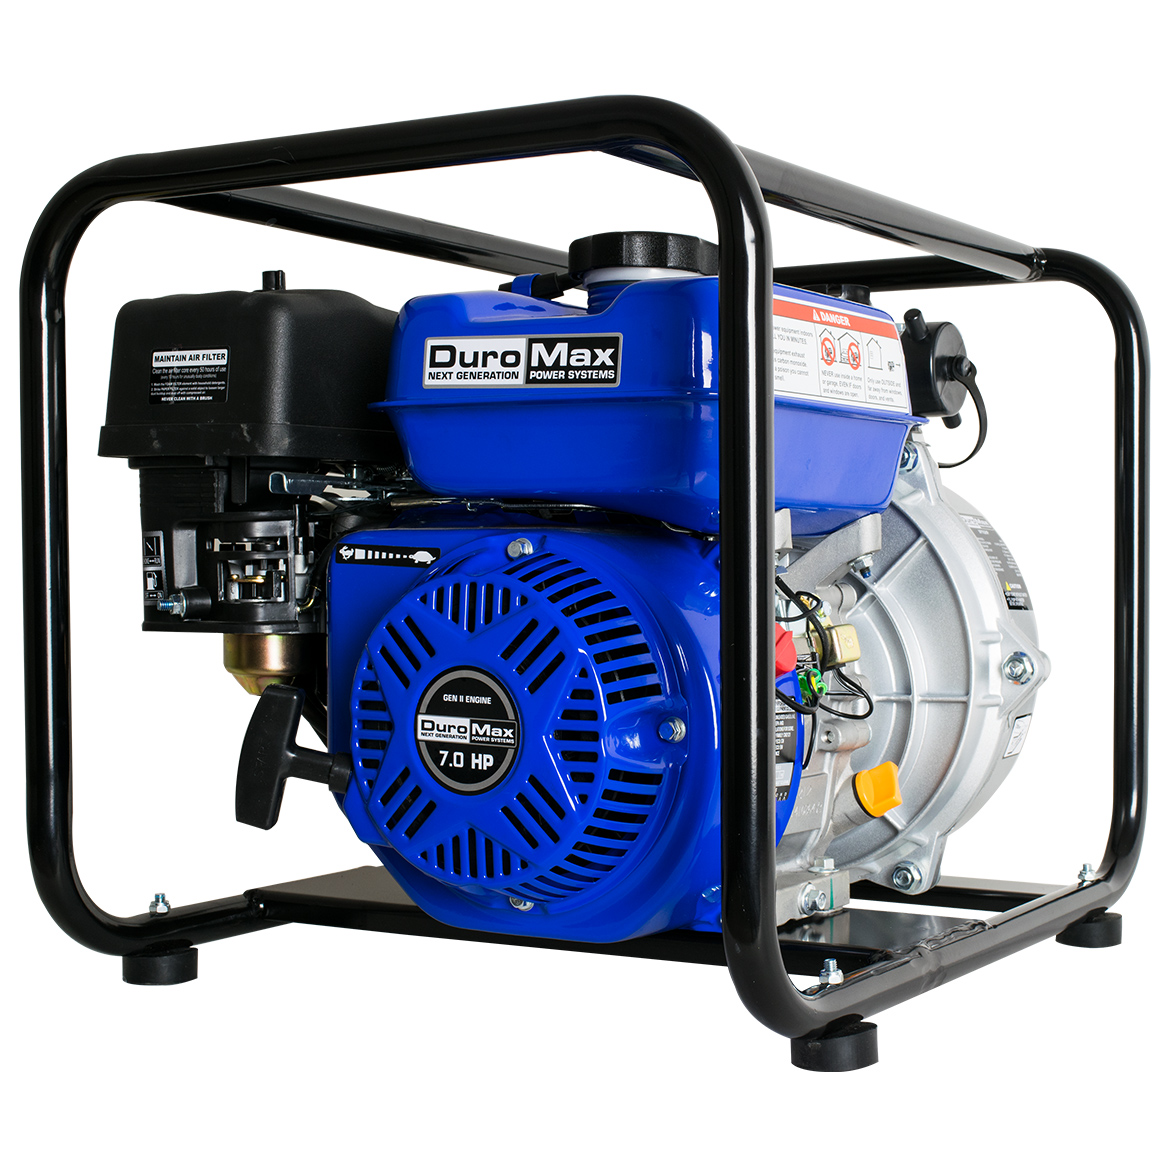 DuroMax XP702HP 212cc 7-HP 2-Inch 70-GPM Gas Powered High Pressure Water Pump